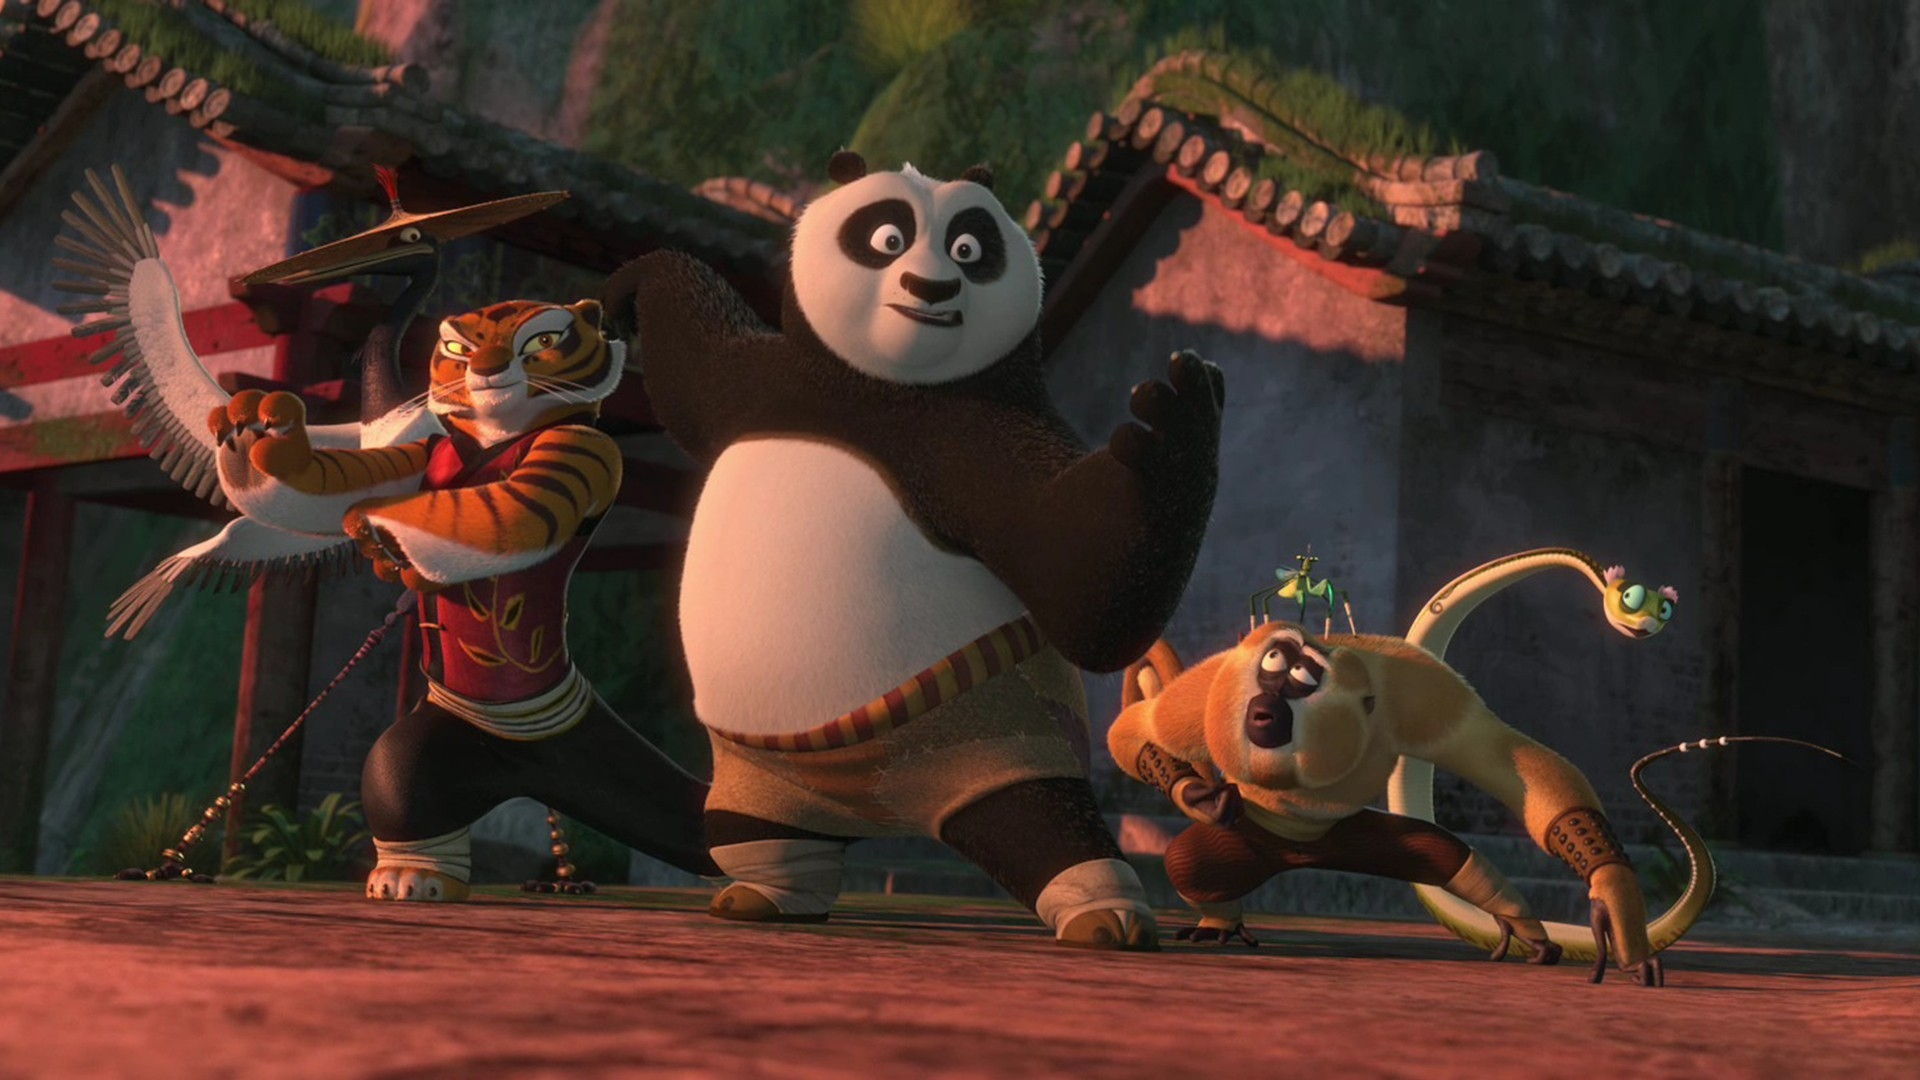 (l to r) Crane (voiced by David Cross), Tigress (voiced by Angelina Jolie), Po (voiced by Jack Black), Monkey (voiced by Jackie Chan), Mantis (voiced by Seth Rogen) and Viper (voiced by Lucy Liu) in Kung Fu Panda 2 (2011)